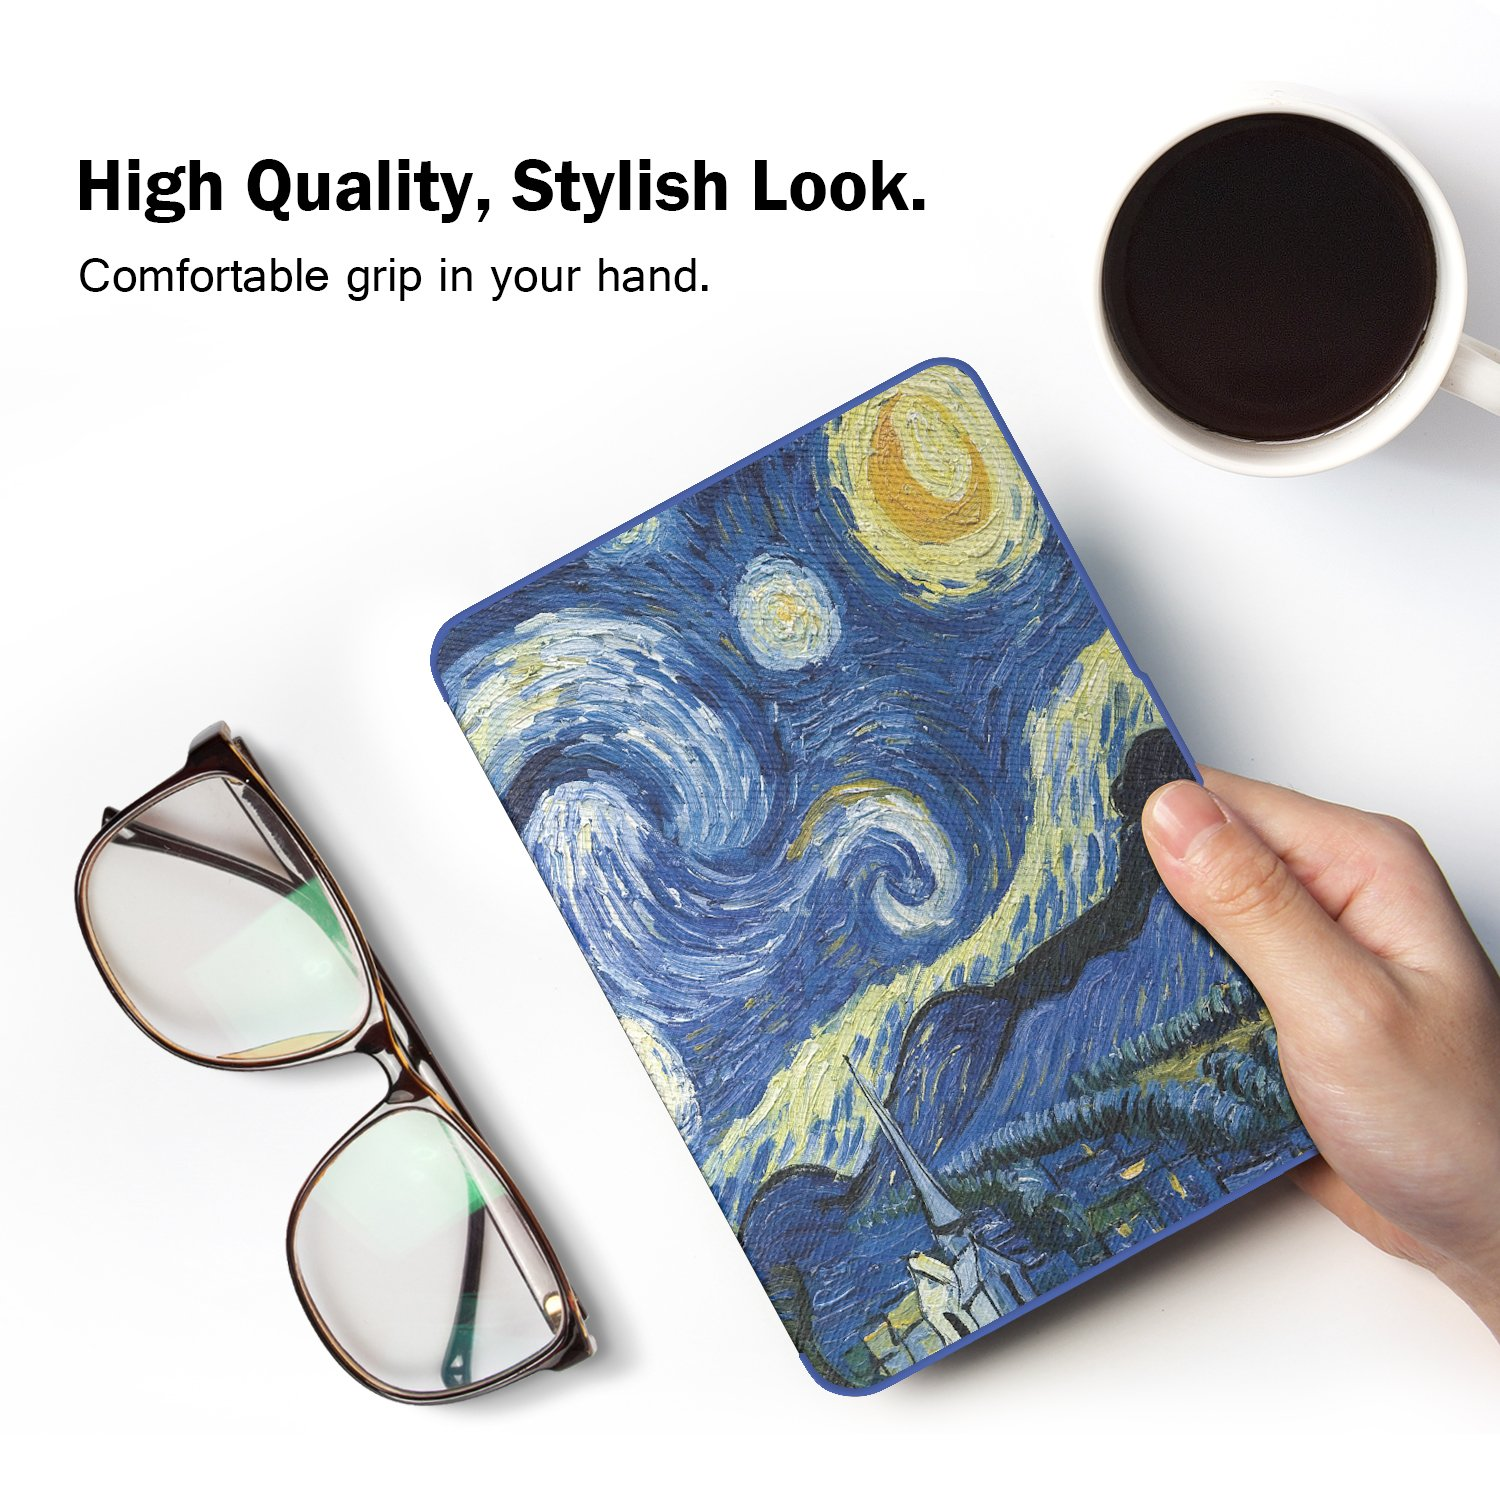 MoKo Case for Kindle Paperwhite, Premium Thinnest and Lightest PU Leather Cover with Auto Wake/Sleep for Amazon All-New Kindle Paperwhite (Fits 2012, 2013, 2015 and 2016 Versions), Starry Night by MoKo (Image #5)